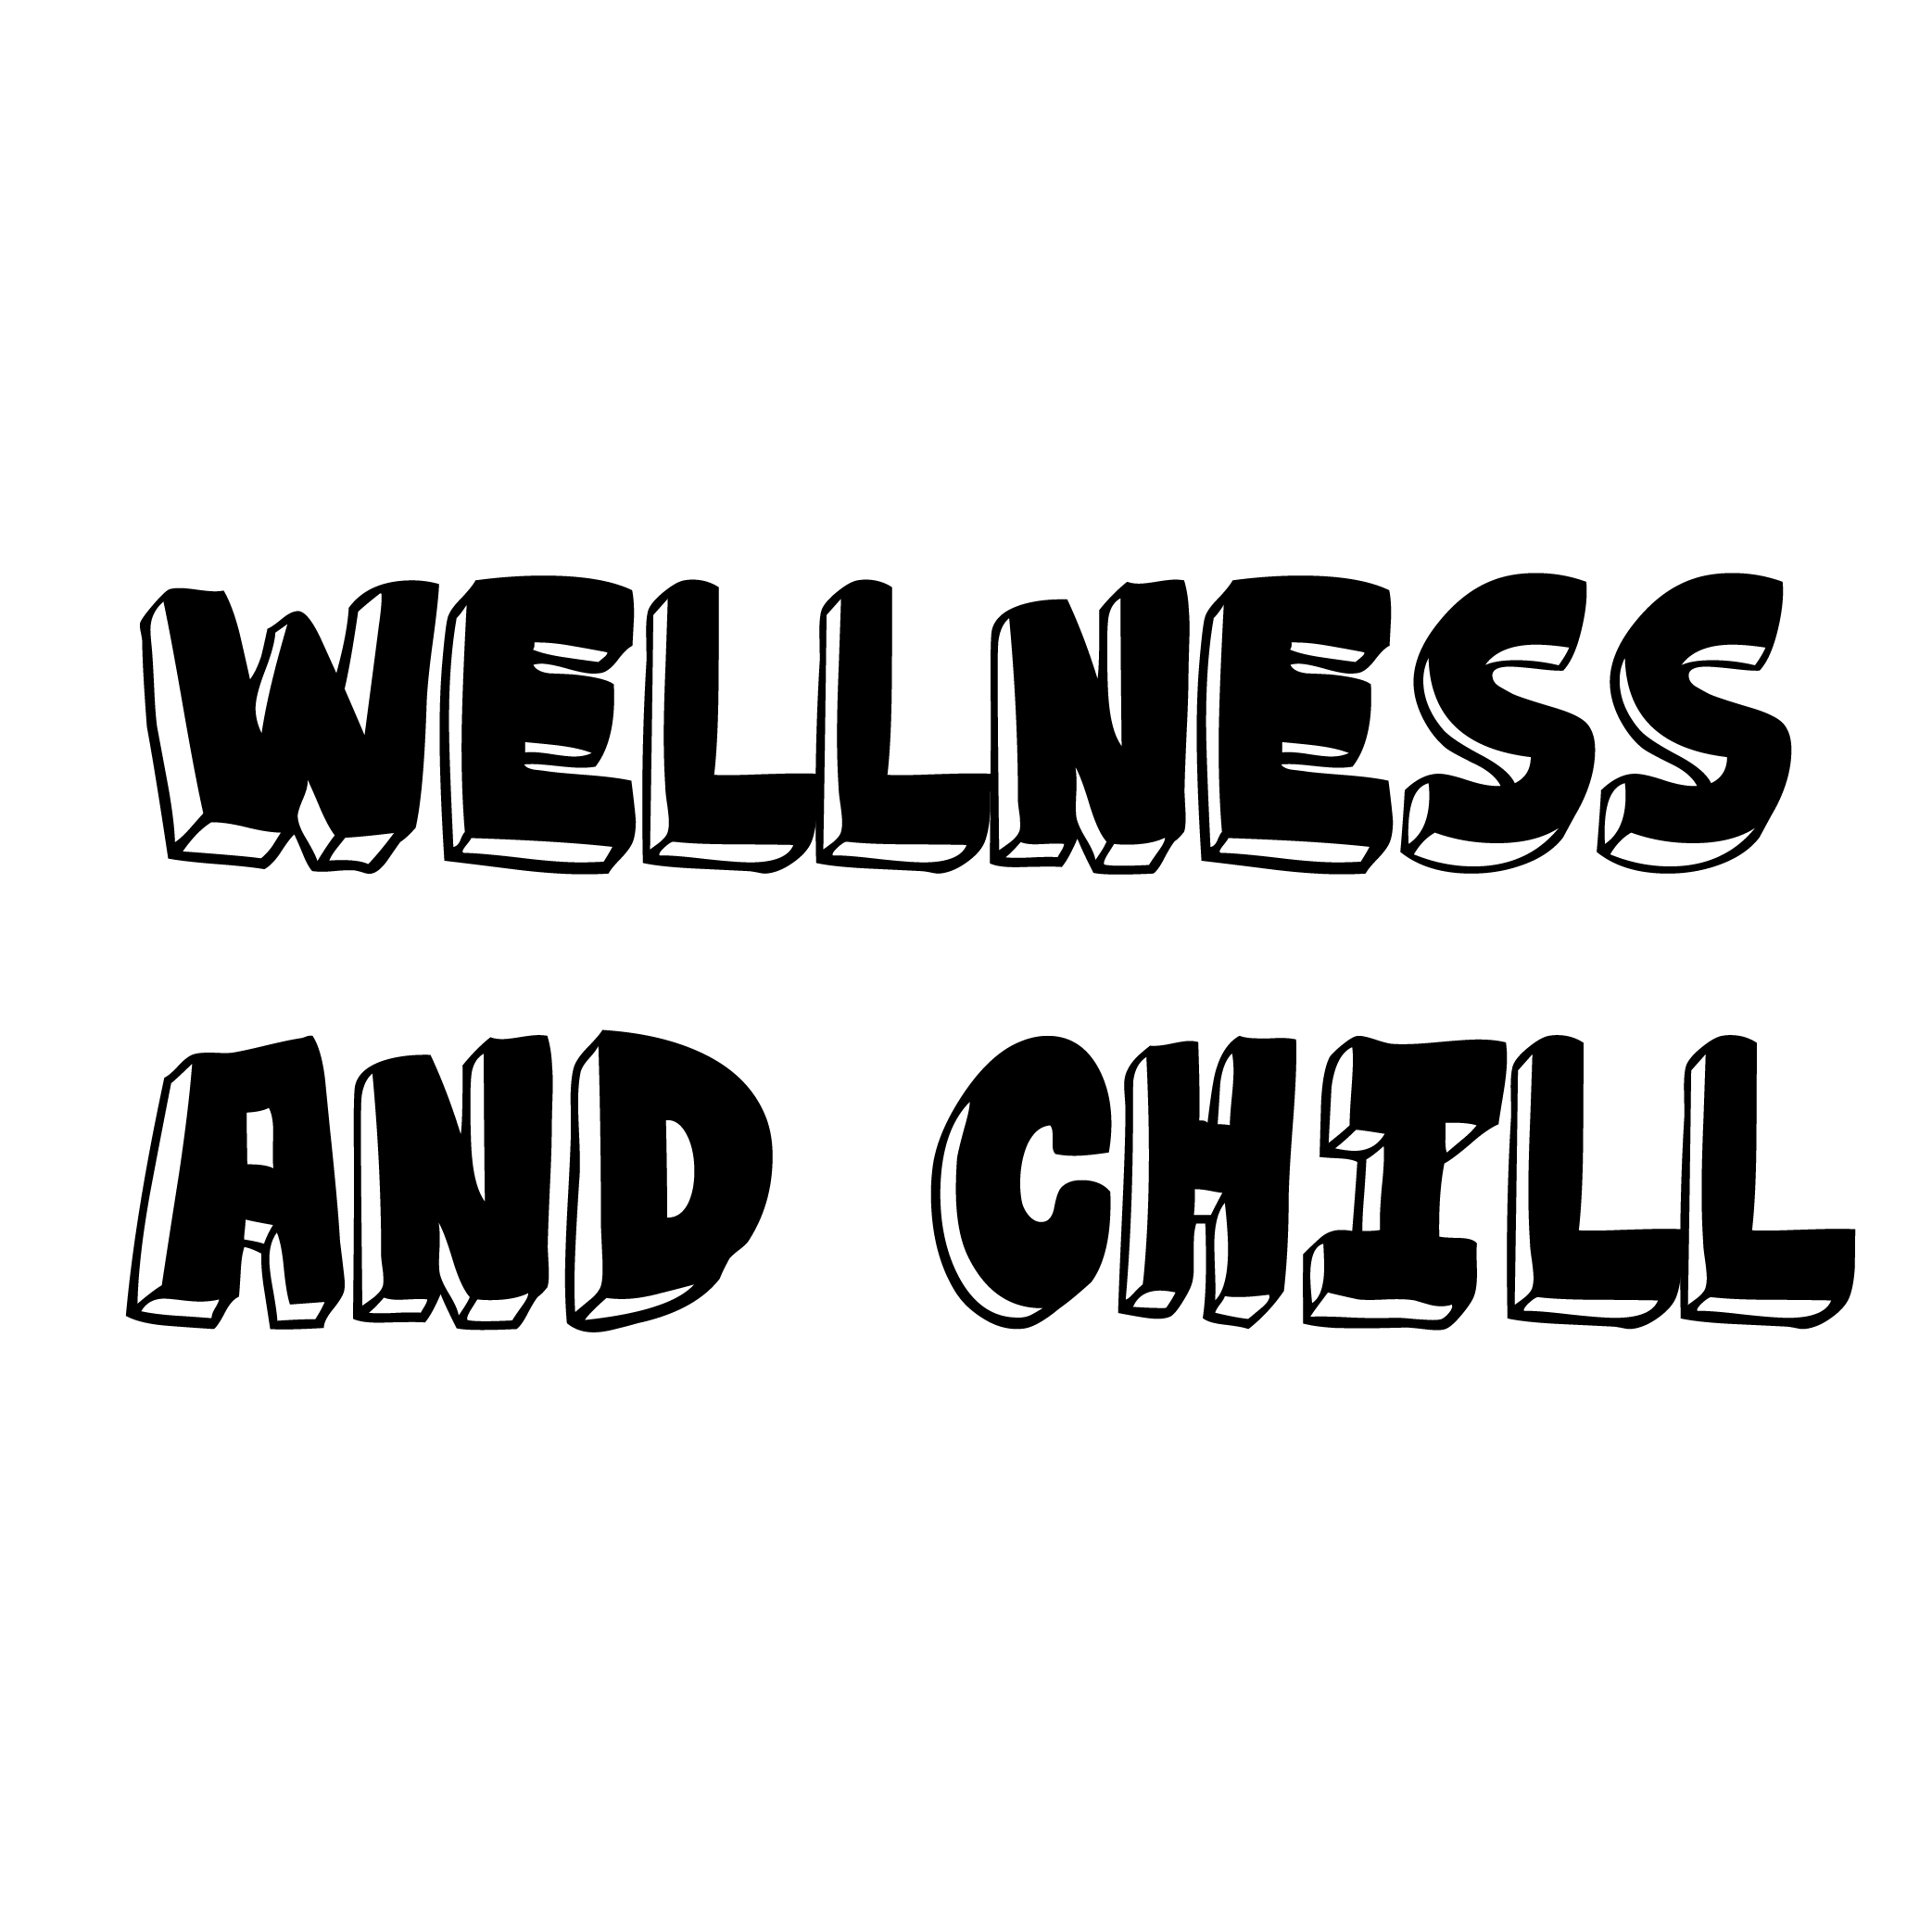 Welcome to Wellness and Chill!